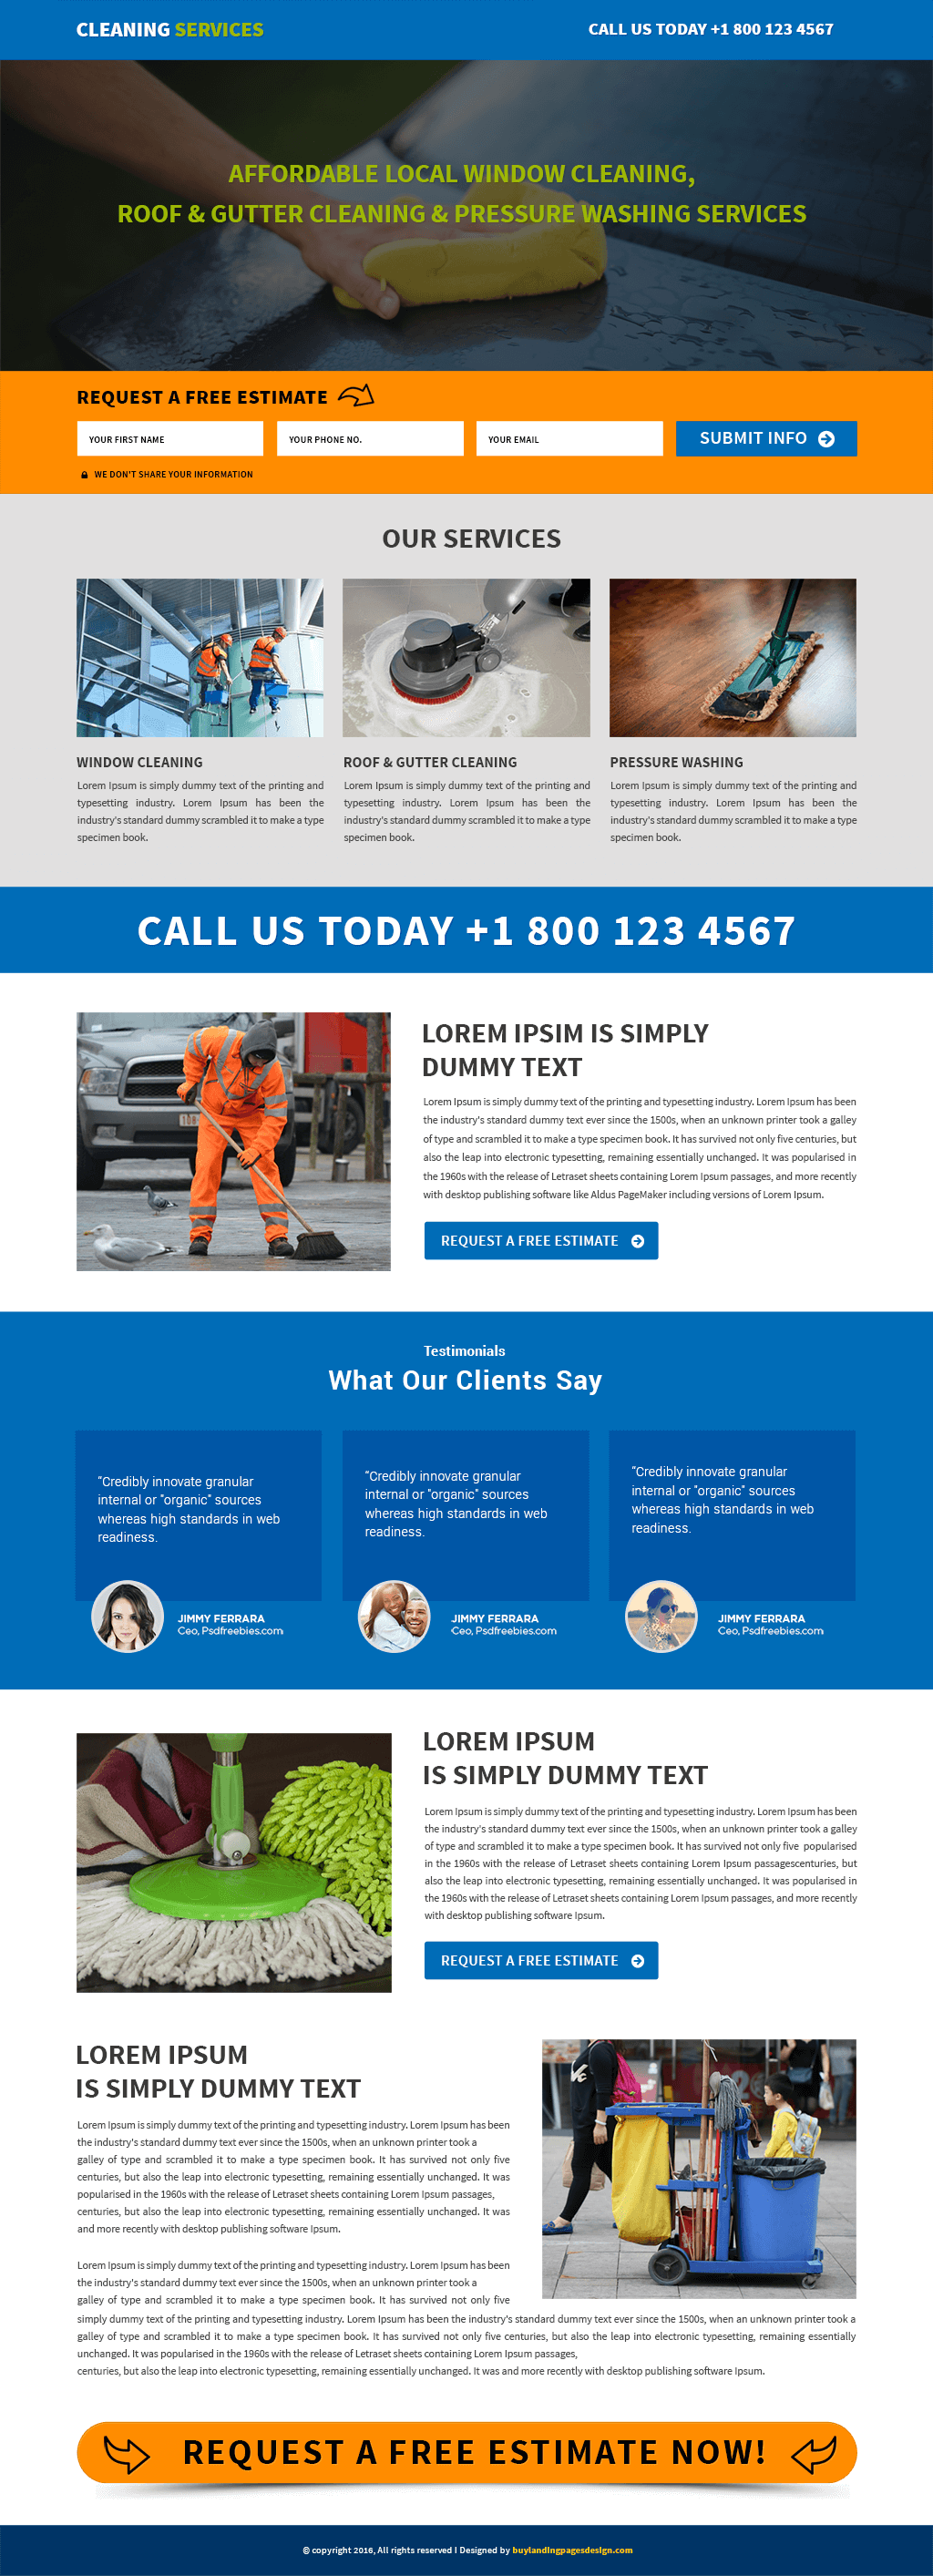 Cleaning Services responsive landing page template